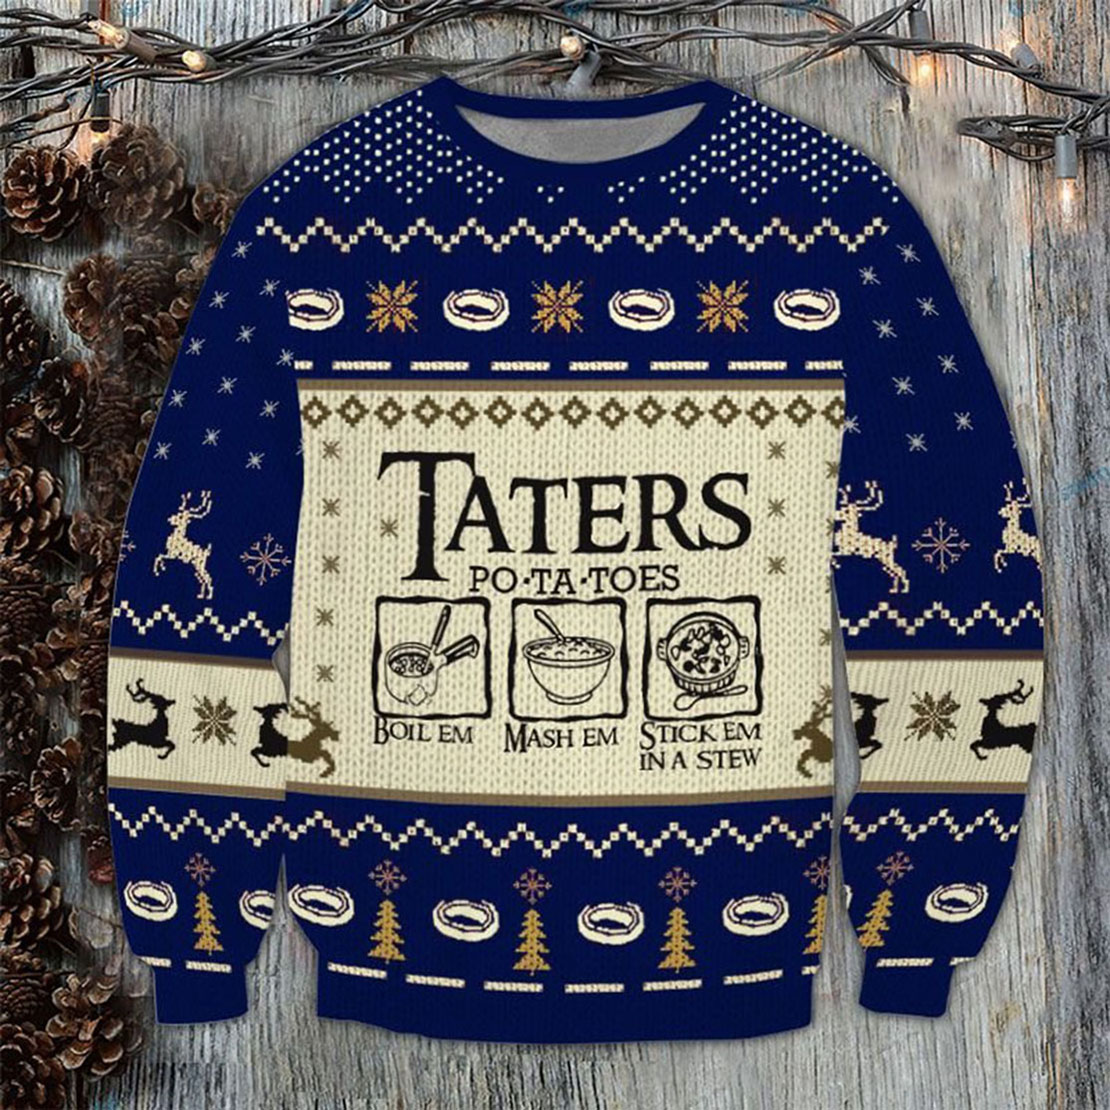 The Lord of the Rings Taters Potatoes Boil em Ugly Sweater